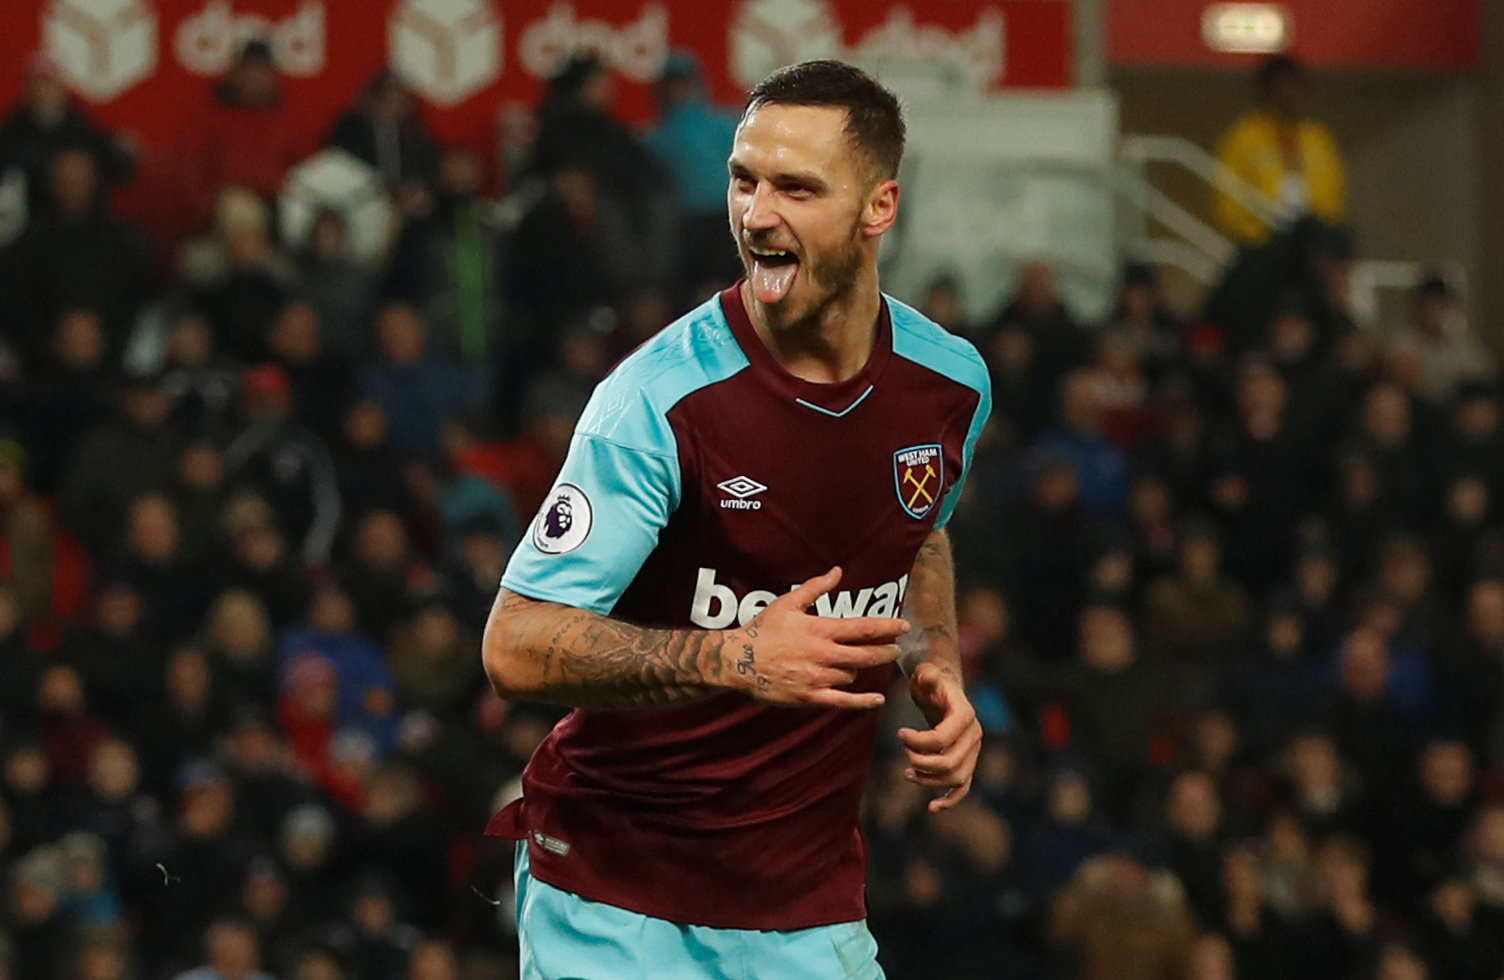 A jubilant Marko Arnautovic after scoring. Picture: Action Images